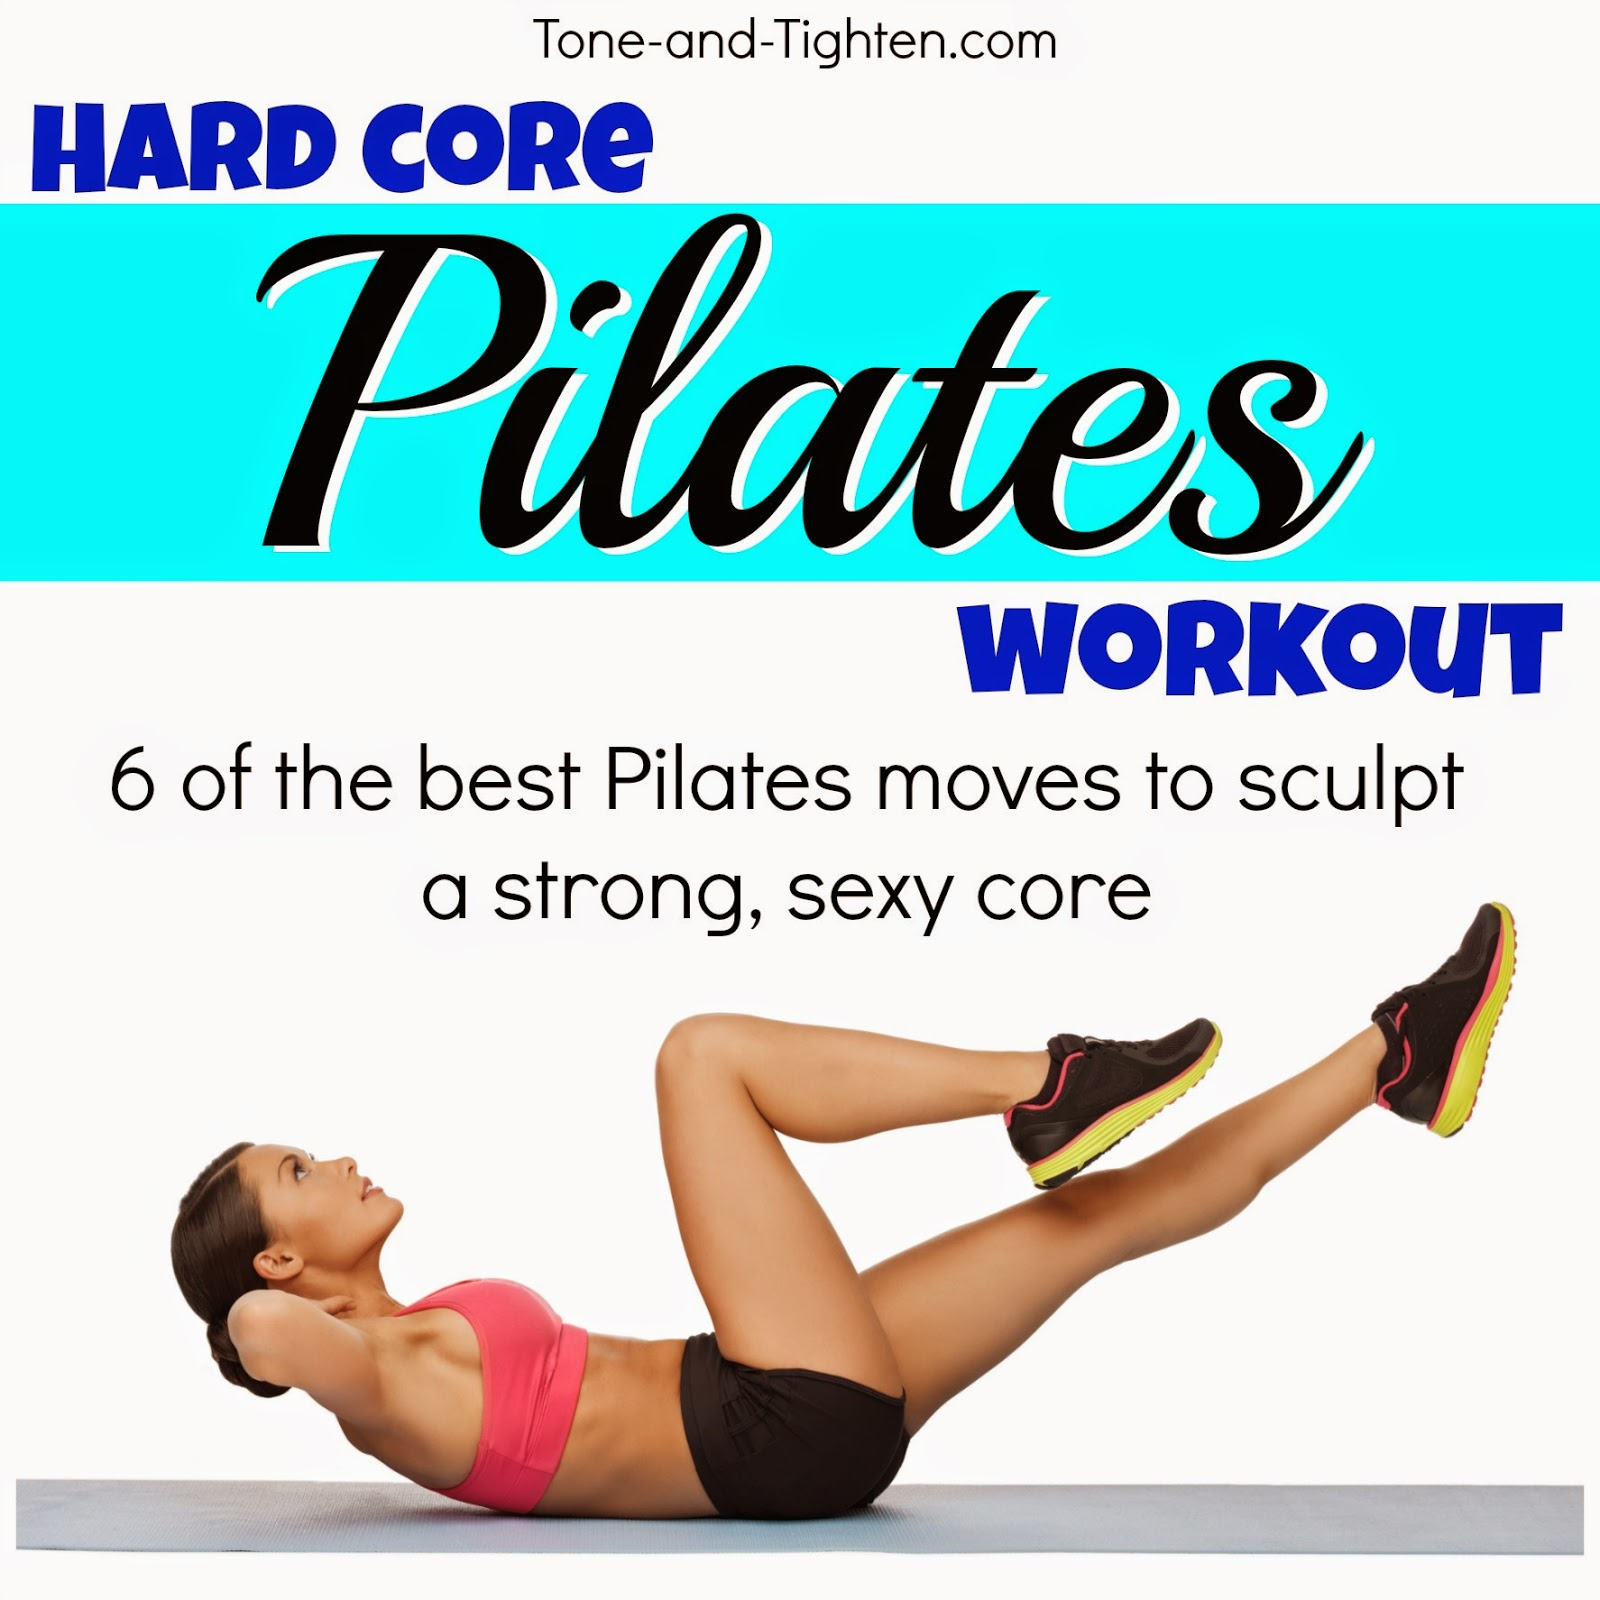 Pilates Workout 6 Of The Best Exercises For A Strong Core And Flat Stomach